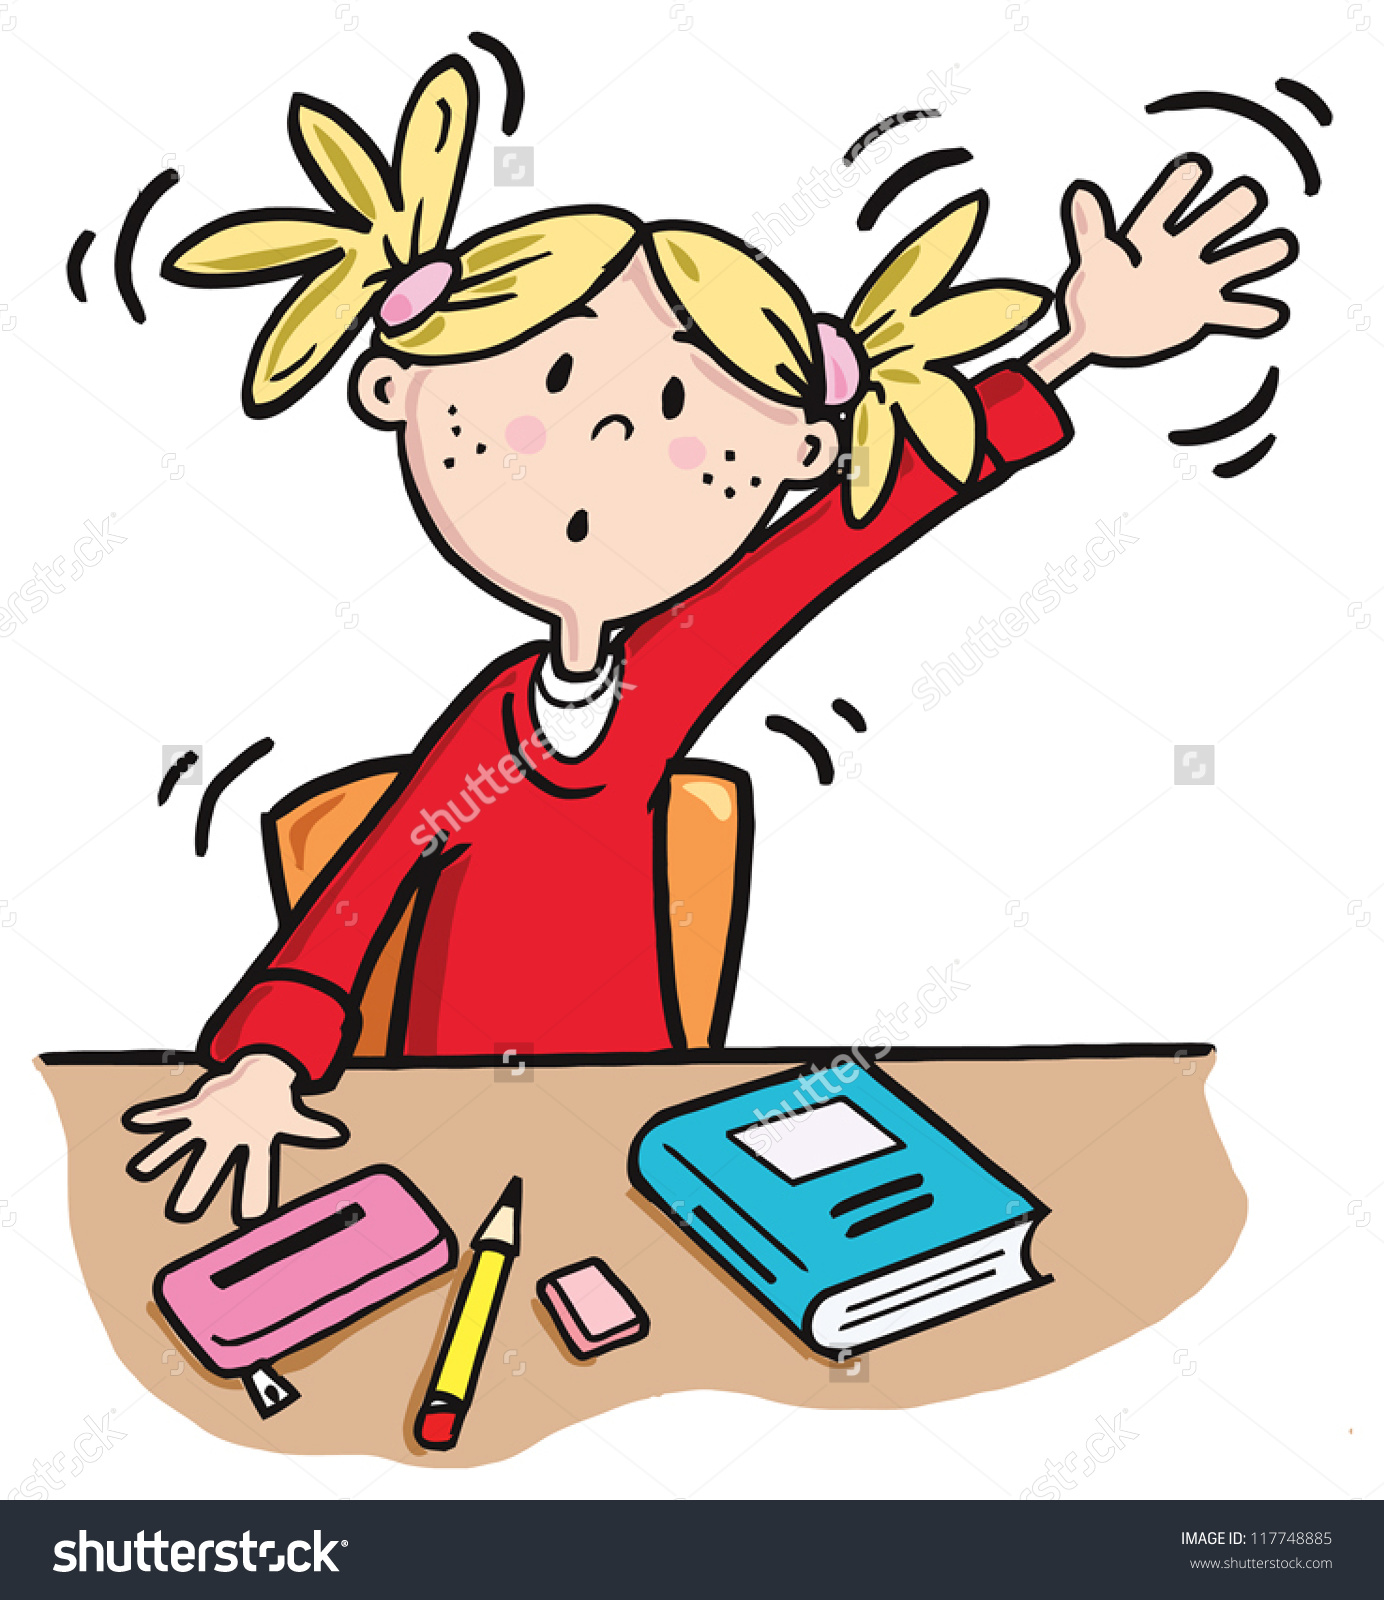 Raising Hands Clipart   Free download on ClipArtMag